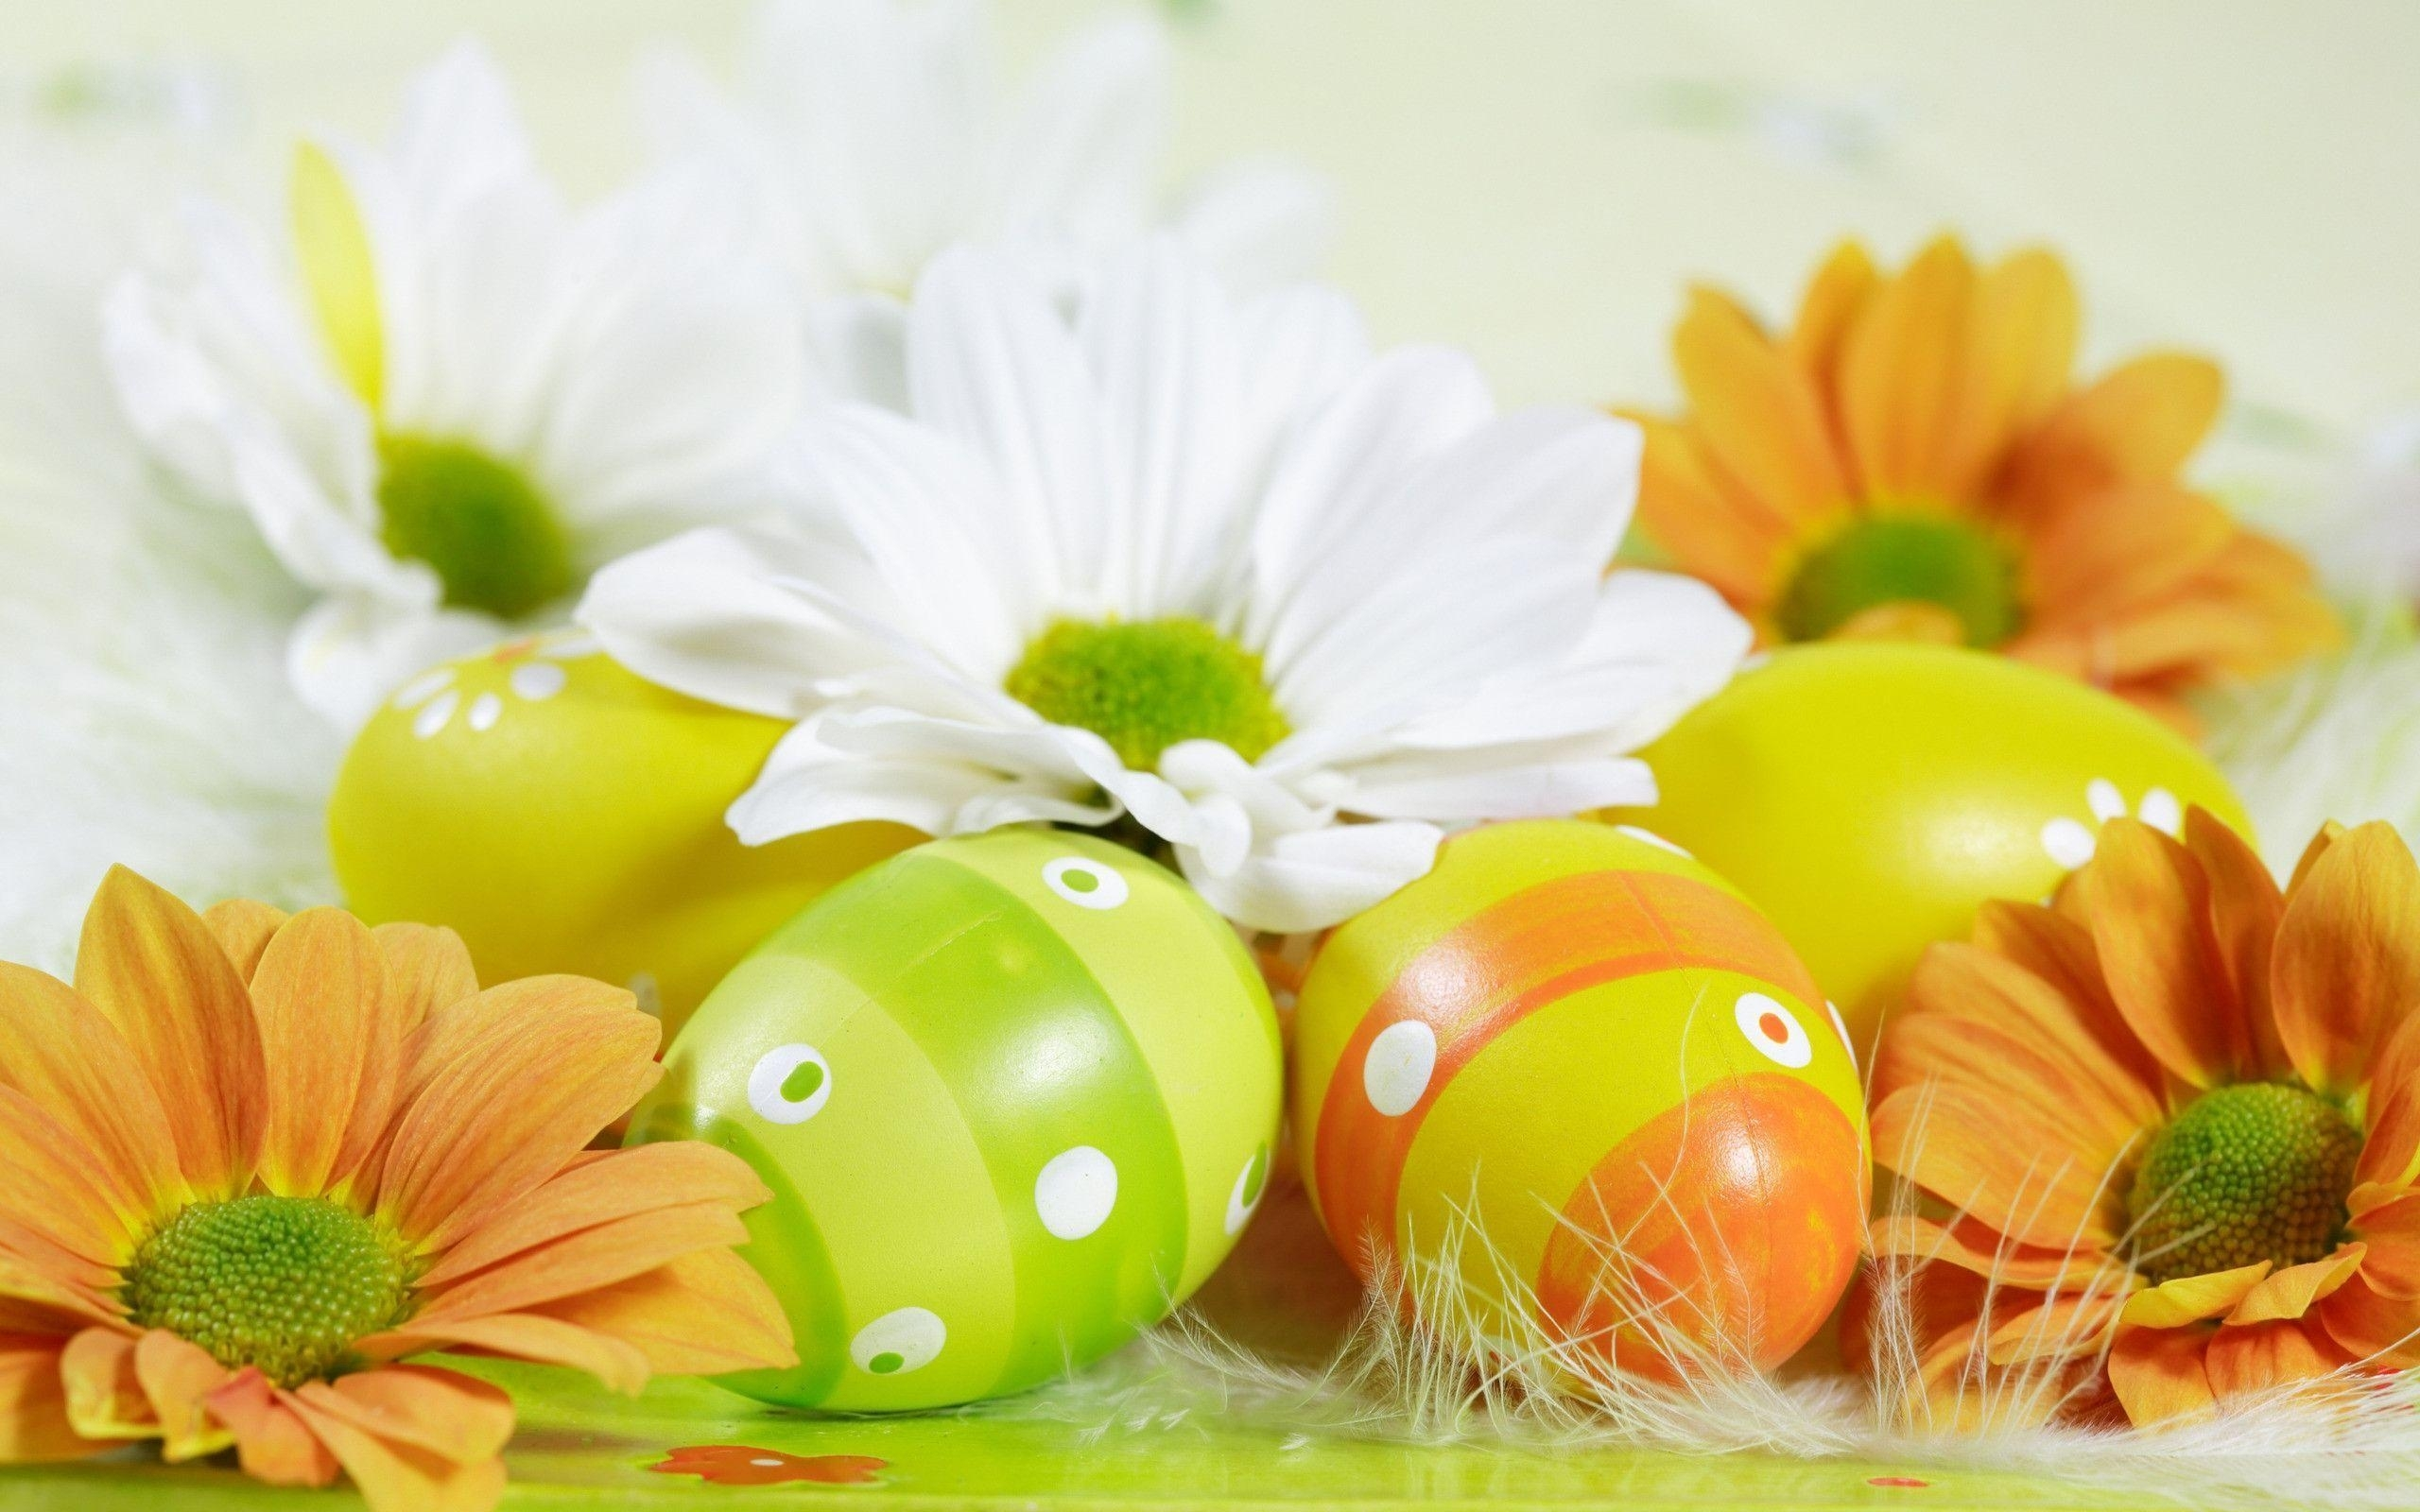 10 New Free Easter Desktop Wallpapers FULL HD 1920×1080 For PC Desktop